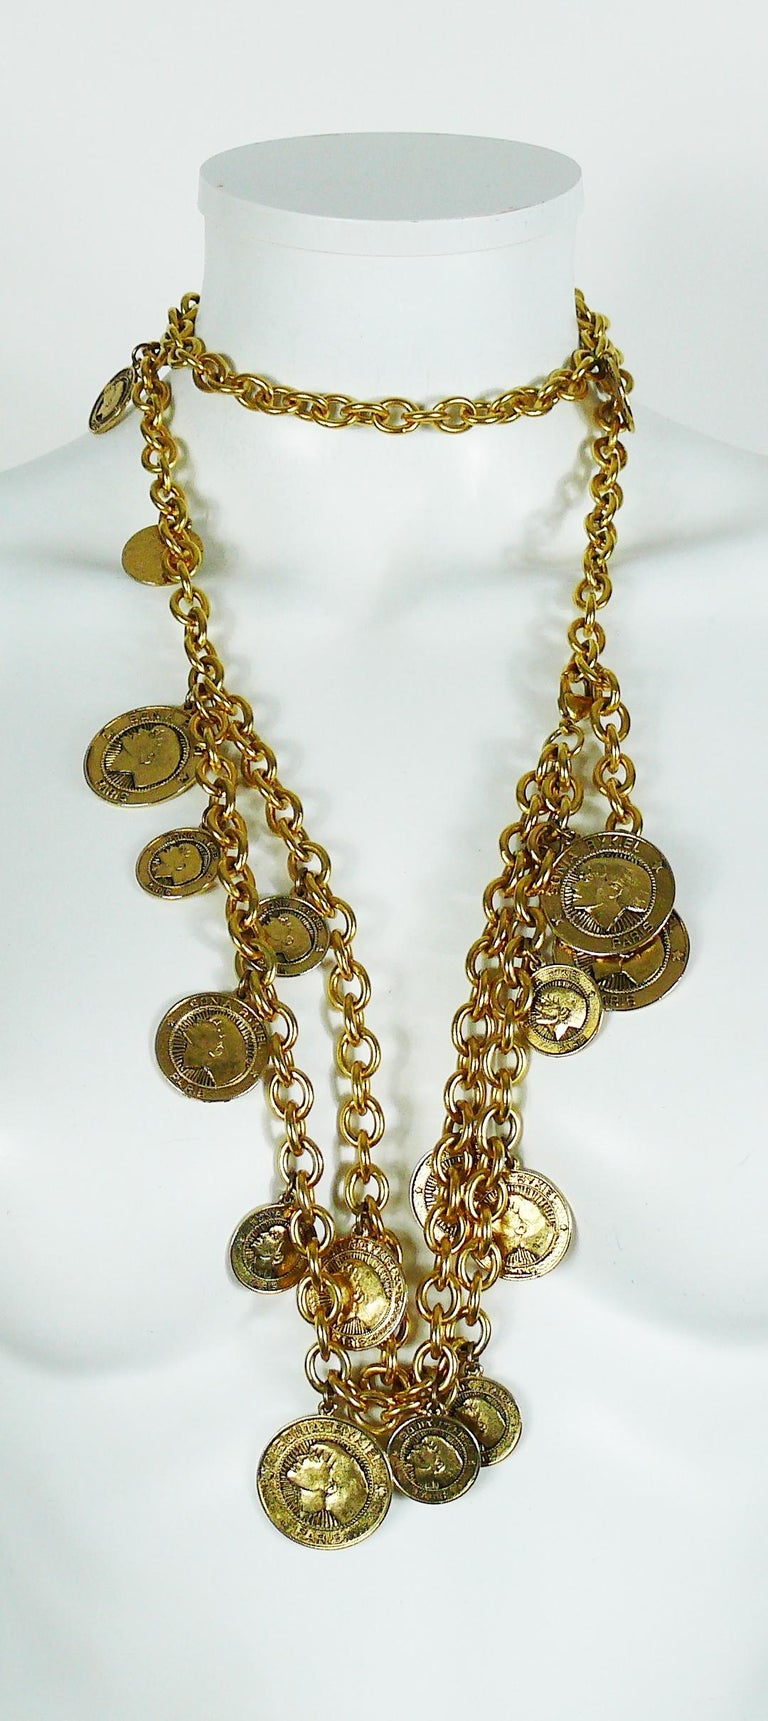 Sonia Rykiel Vintage Gold Toned Chain Belt Necklace with Profile Charms For Sale 1